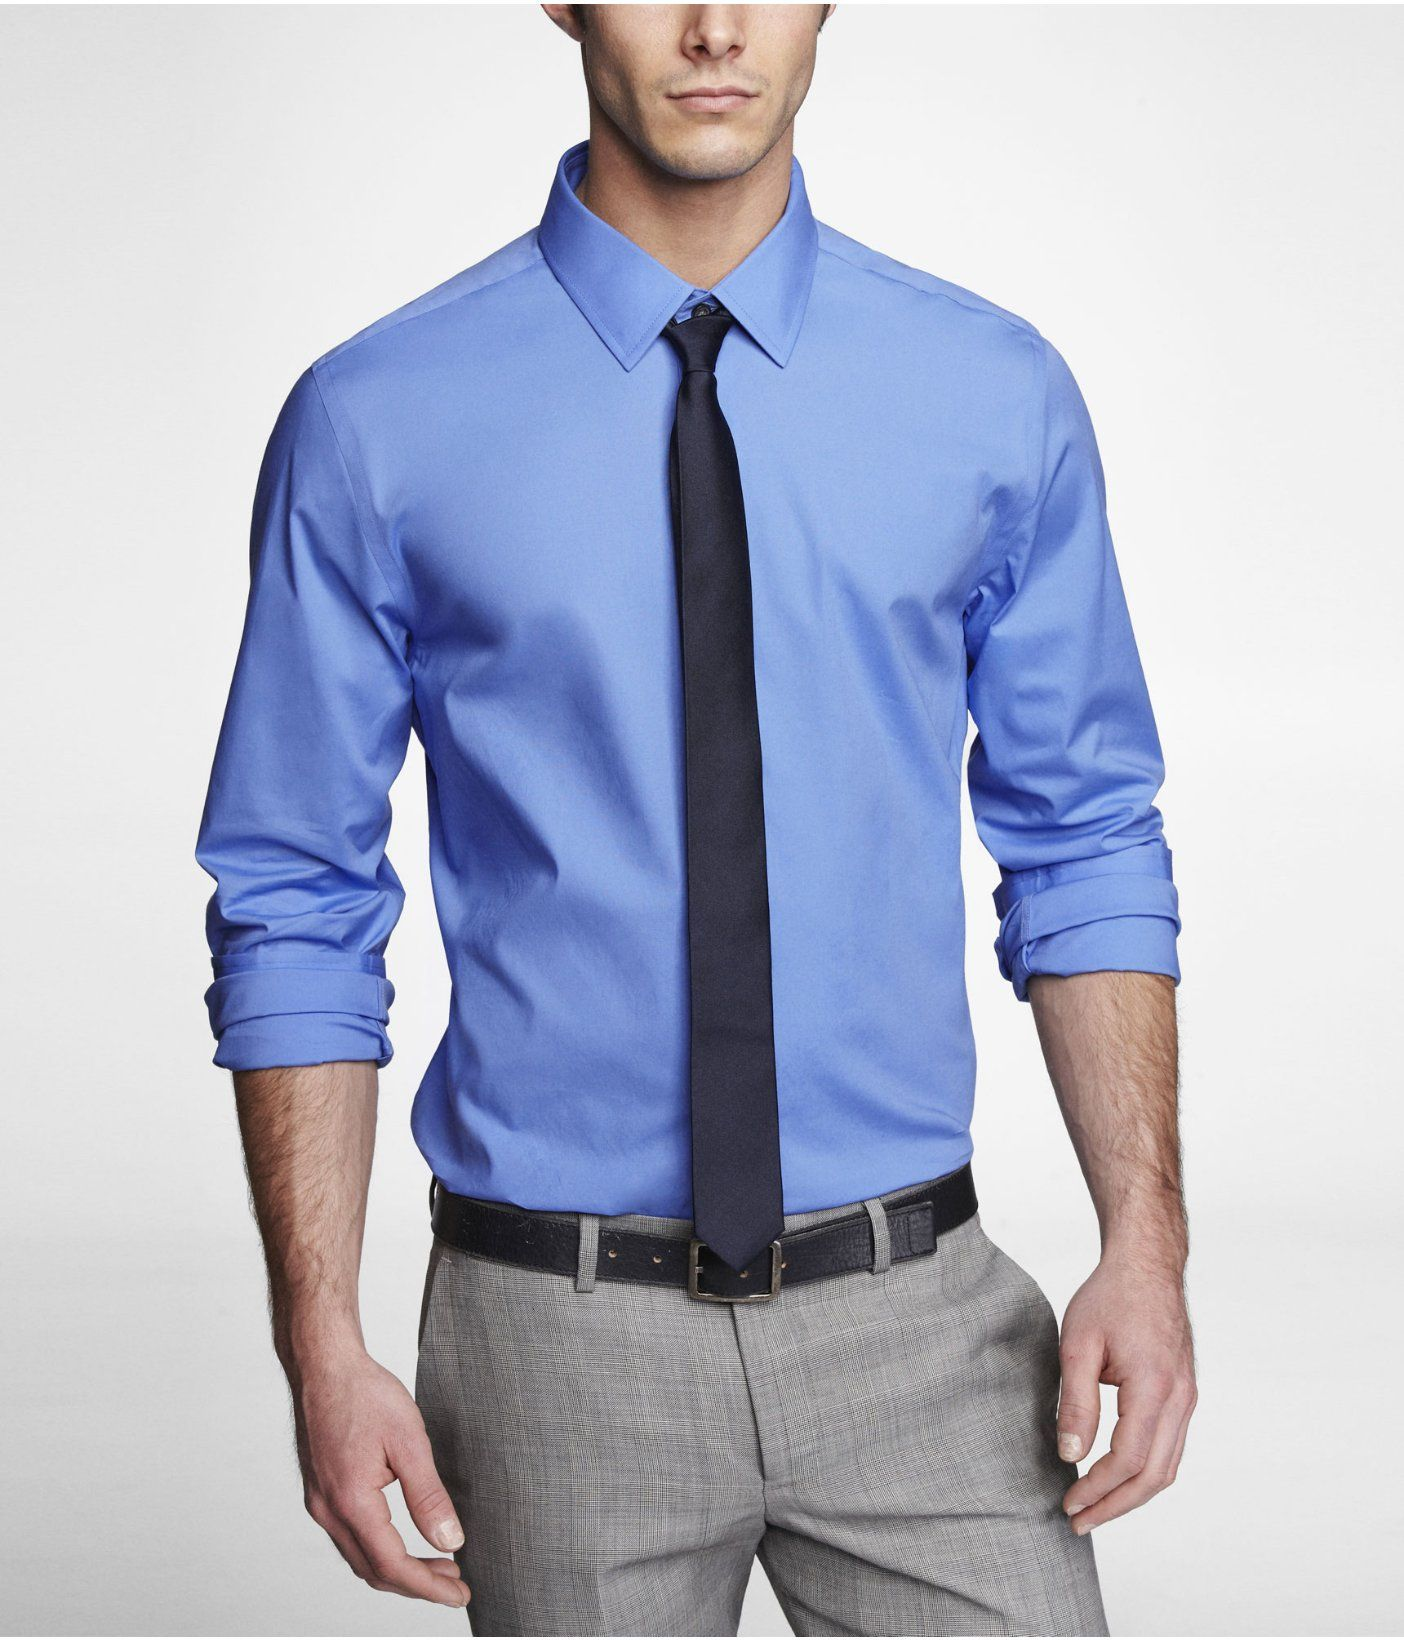 MODERN FIT 1MX STRETCH COTTON SHIRT | Express | Fashion | Pinterest